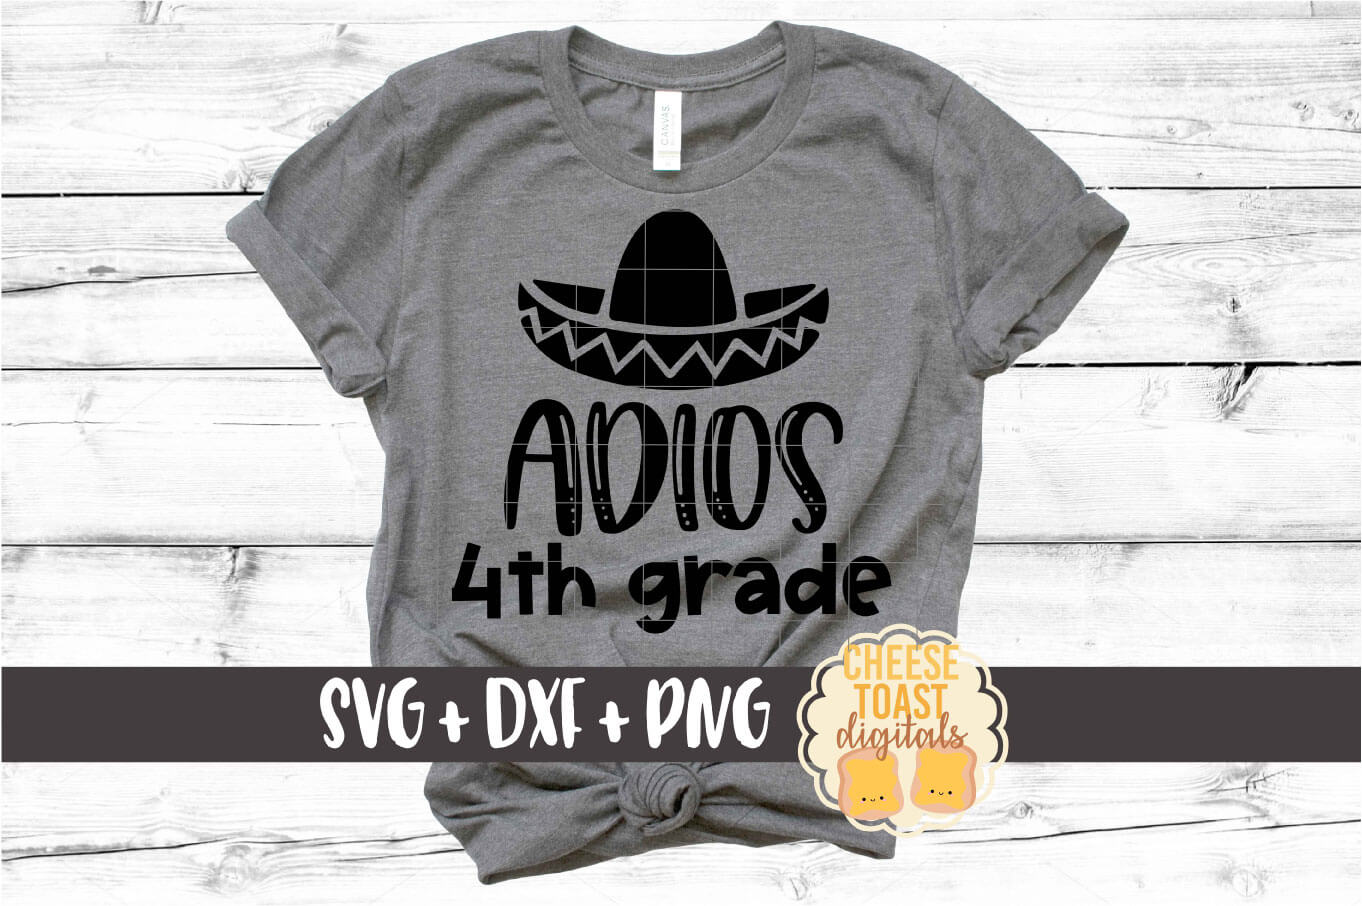 Adios 4th Grade - Last Day of School SVG PNG DXF Cut Files example image 1